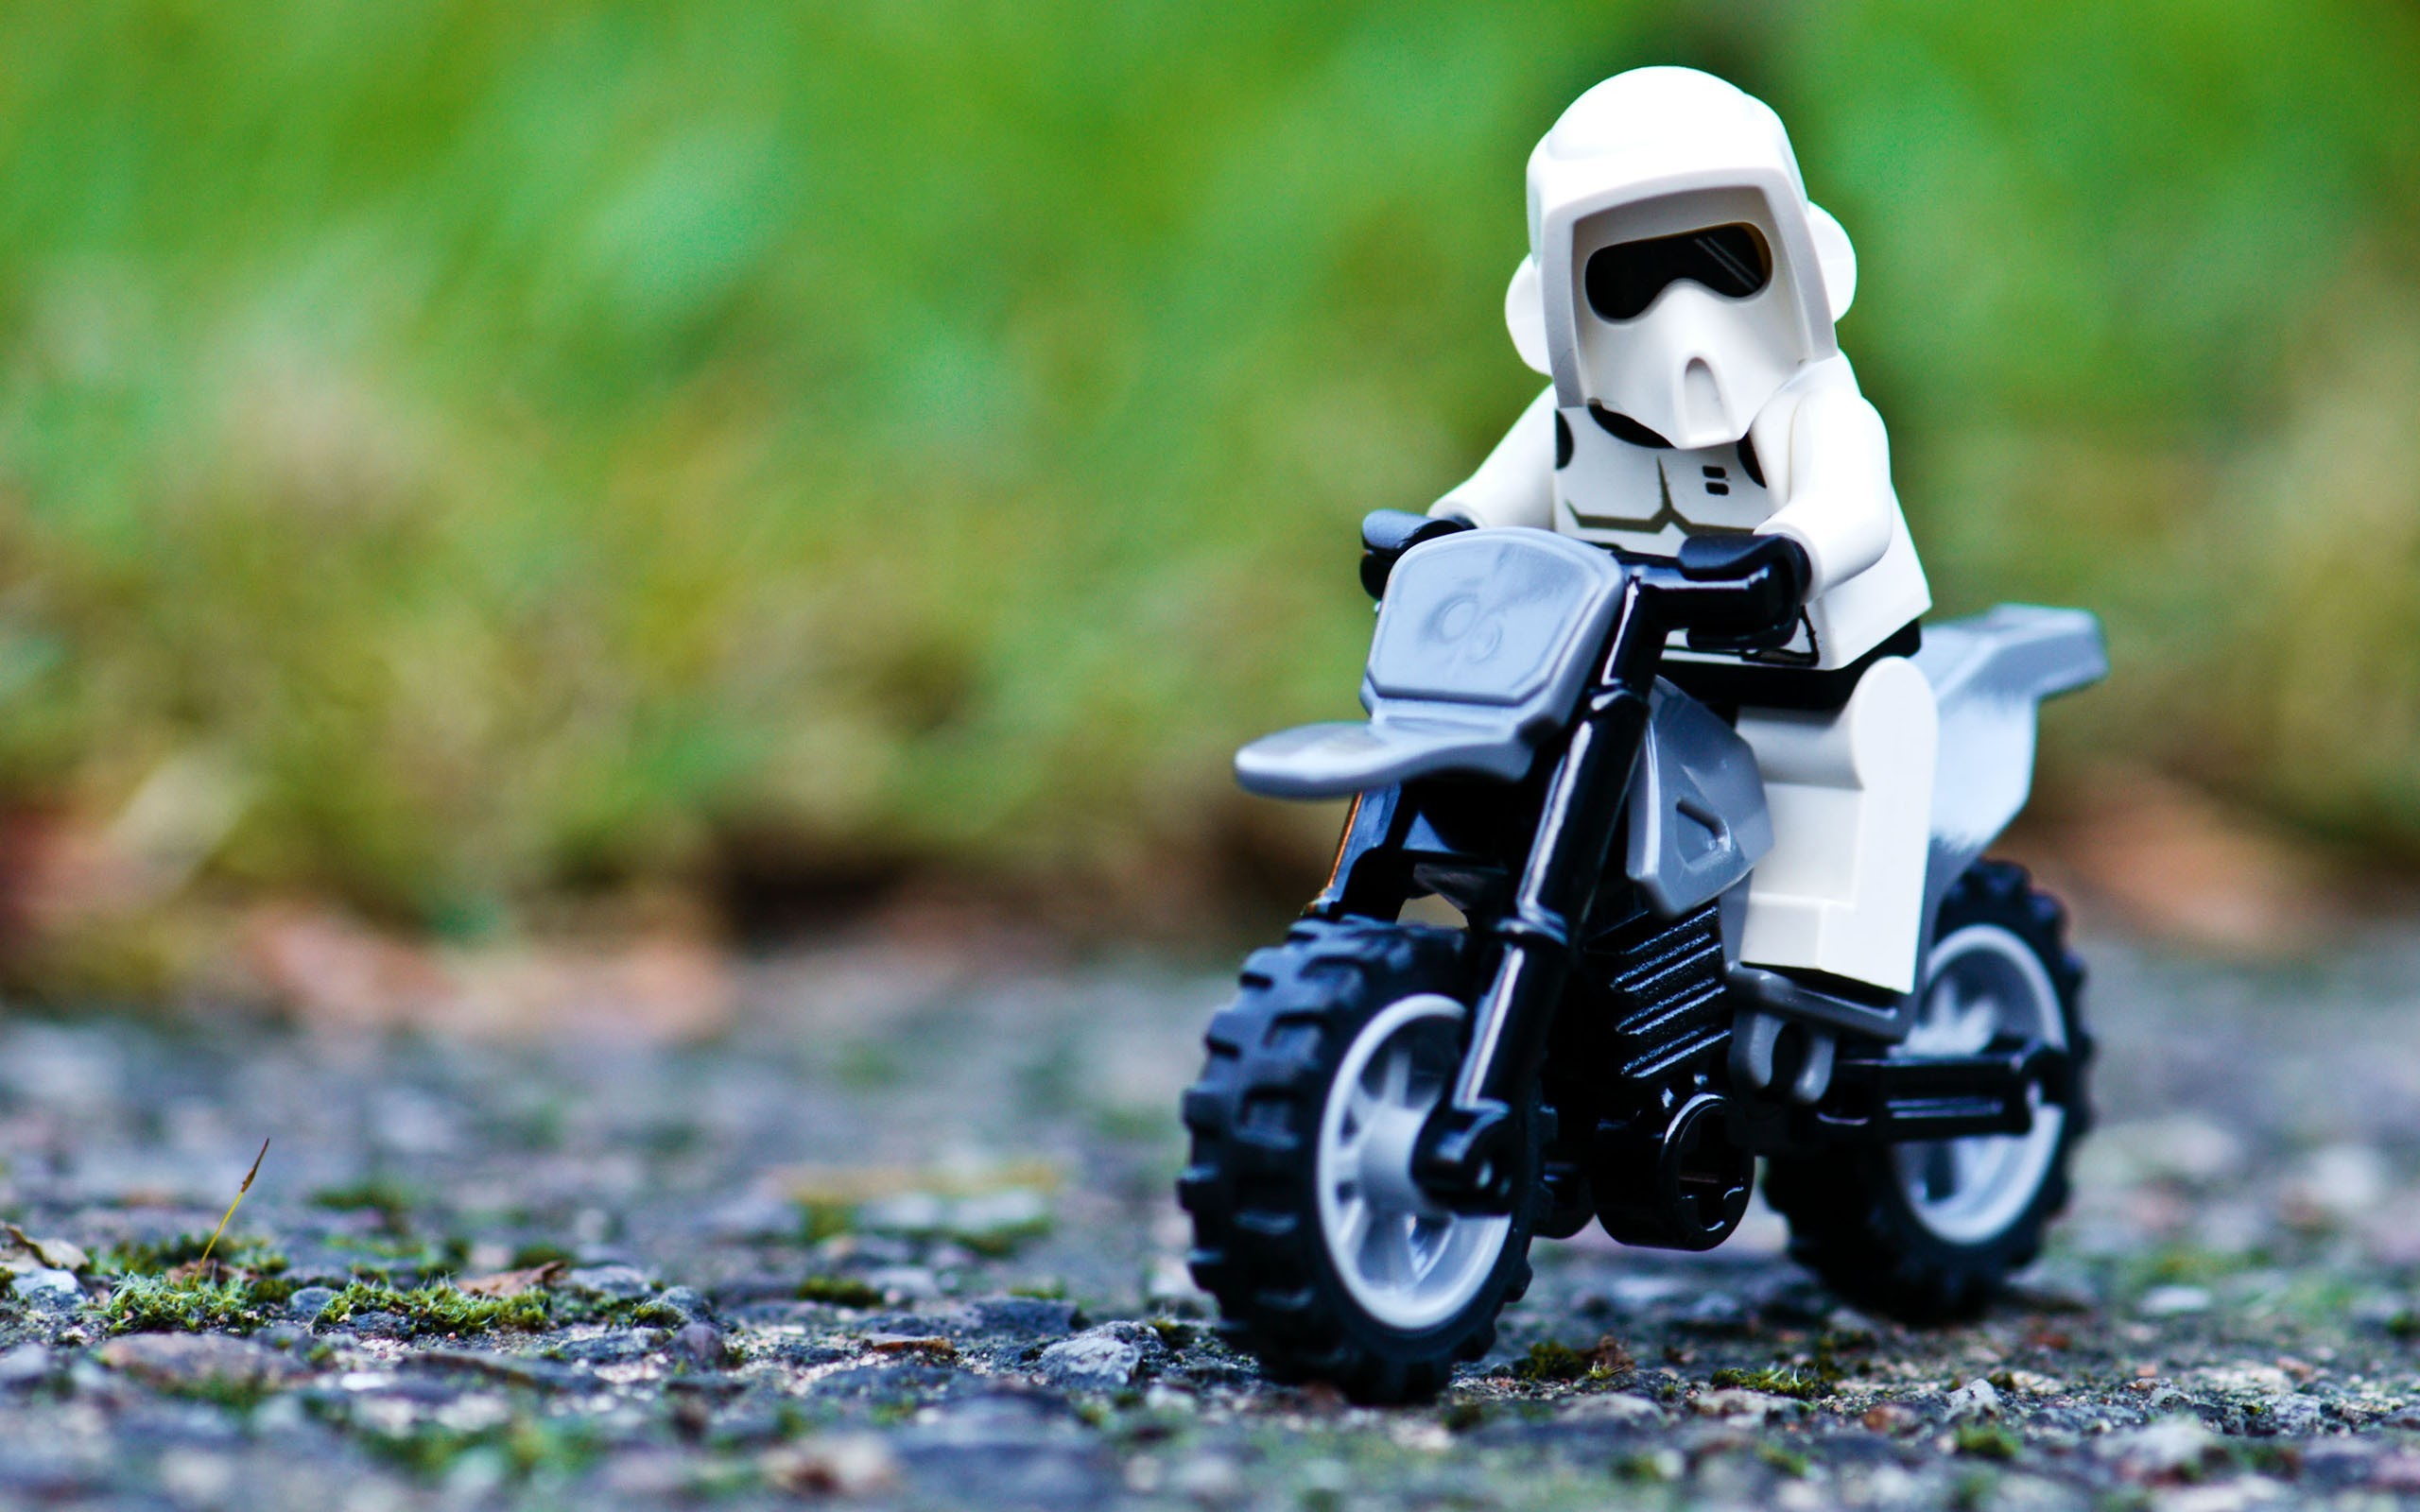 star wars stormtroopers Legos HD Wallpaper